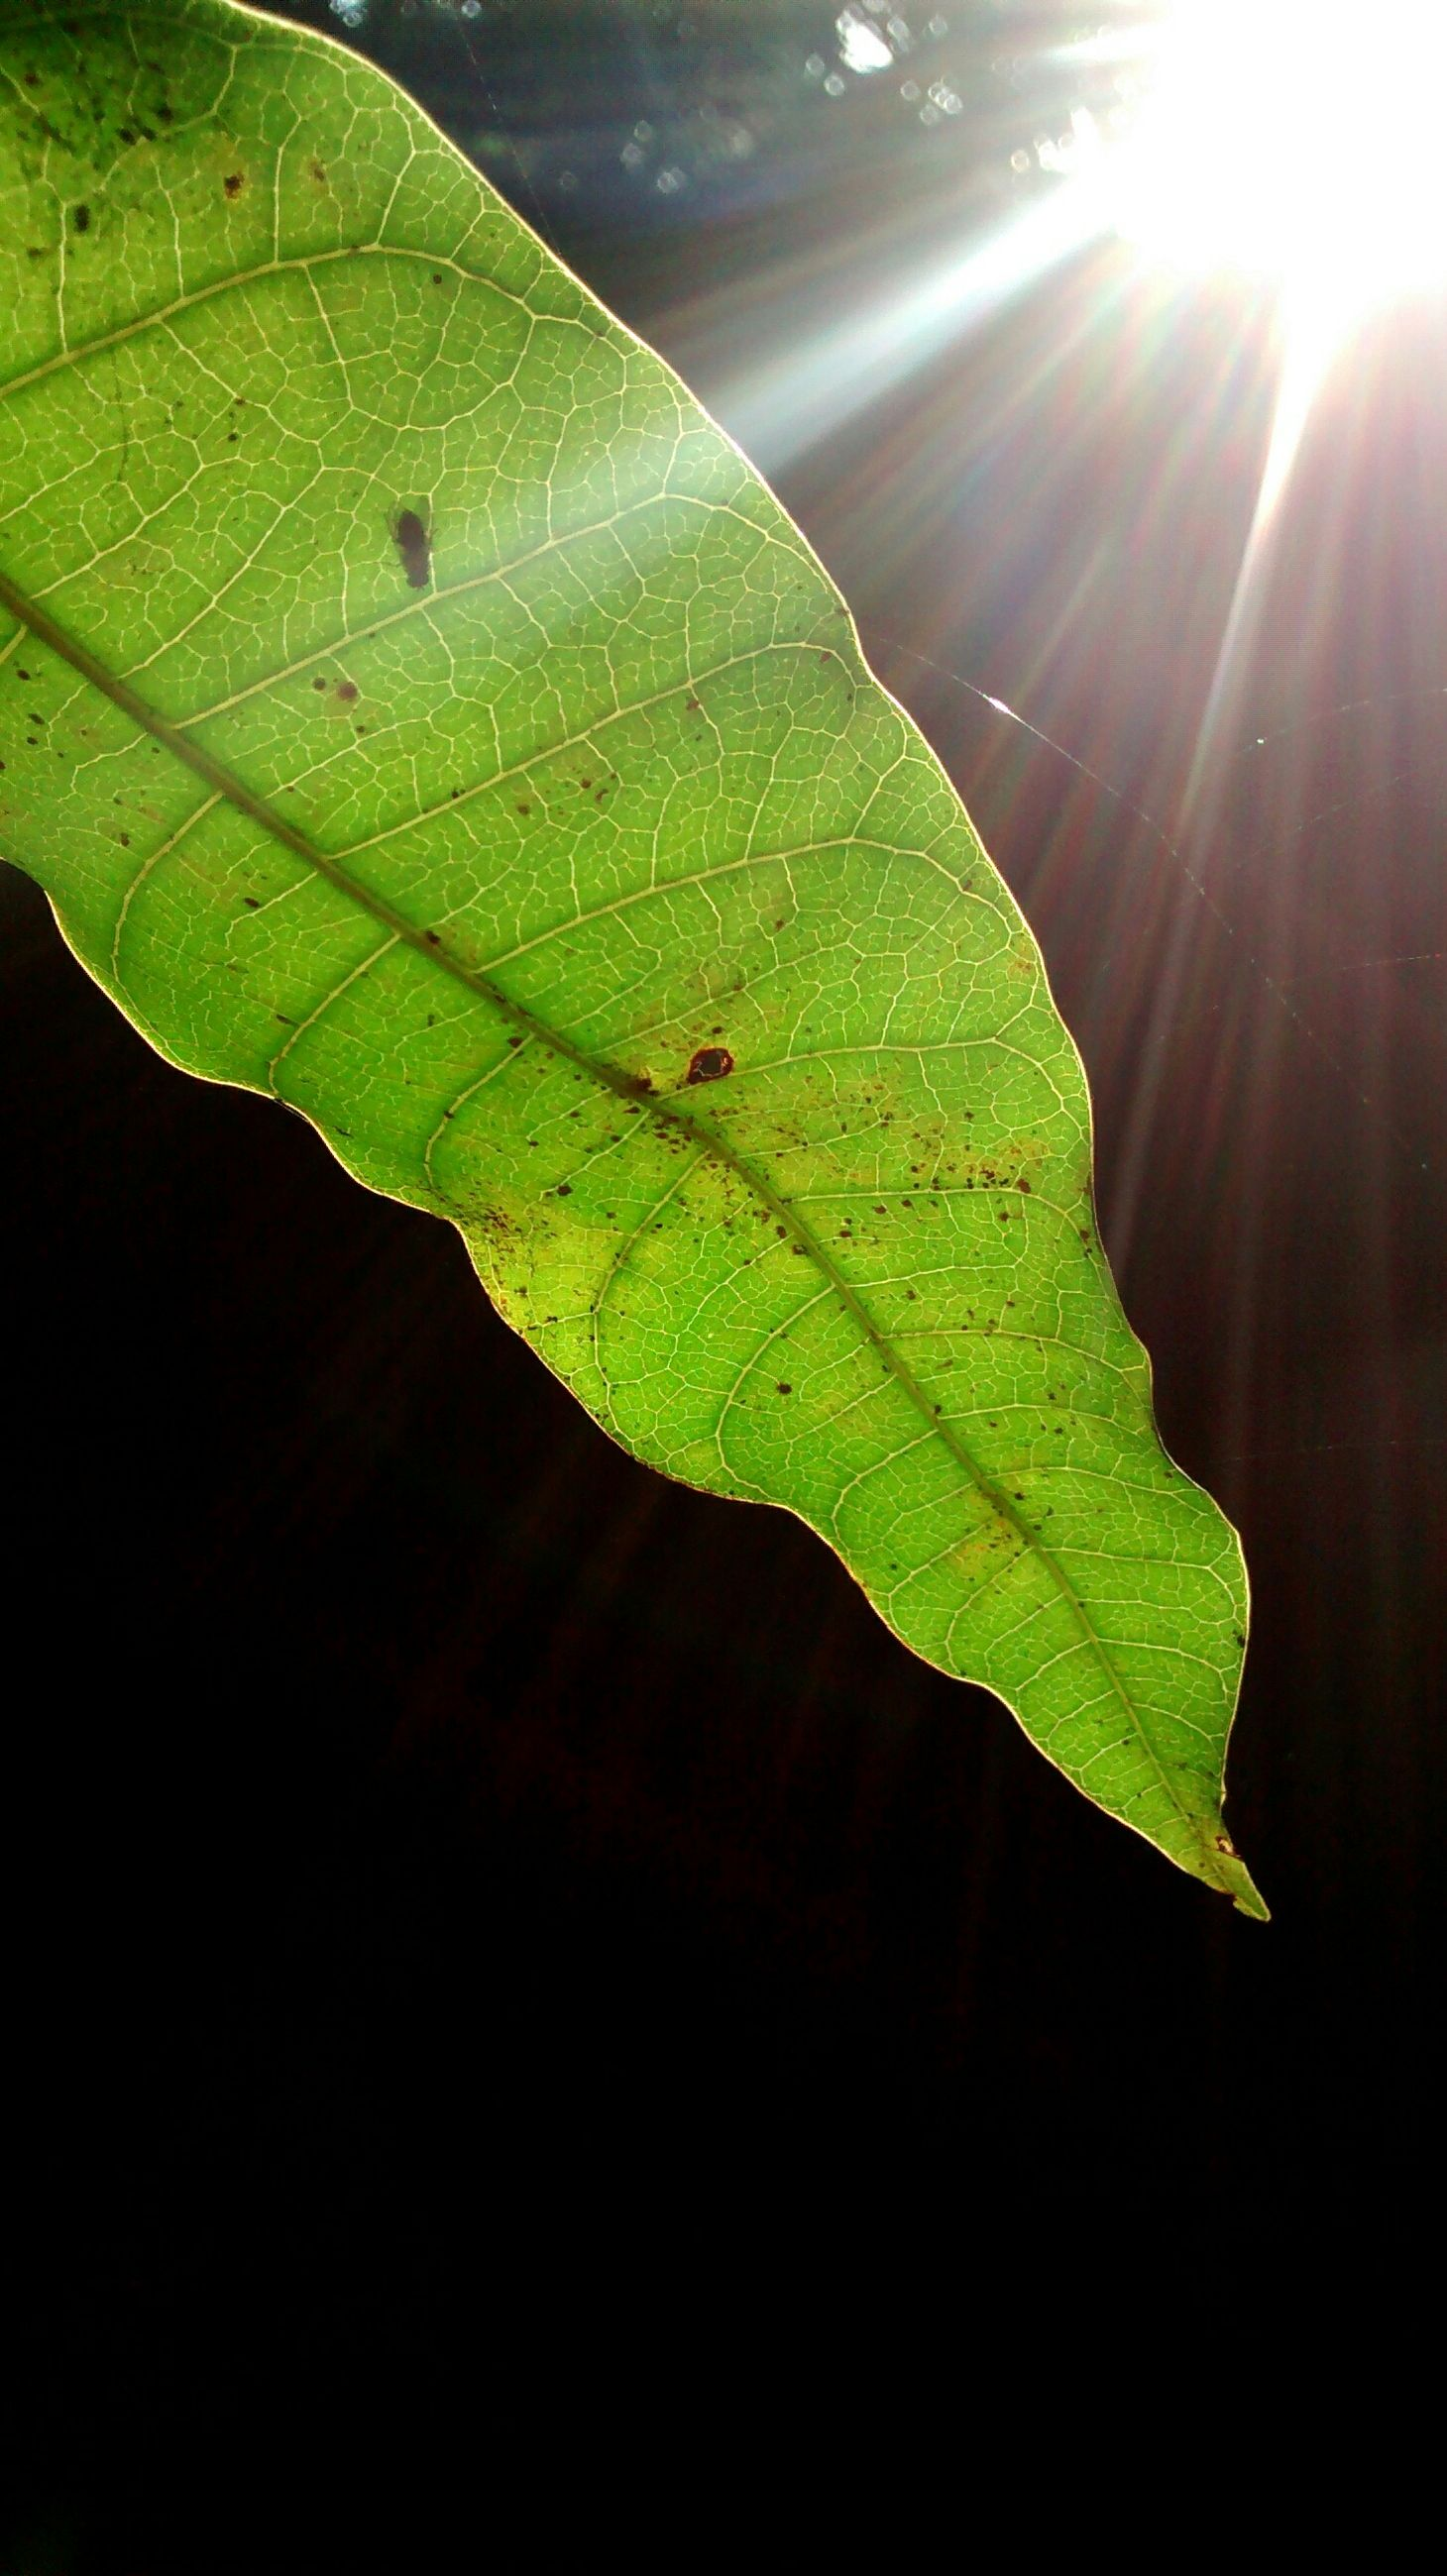 leaf, green color, sunlight, leaf vein, sun, sunbeam, close-up, nature, growth, plant, lens flare, beauty in nature, outdoors, no people, leaves, green, natural pattern, day, tranquility, focus on foreground